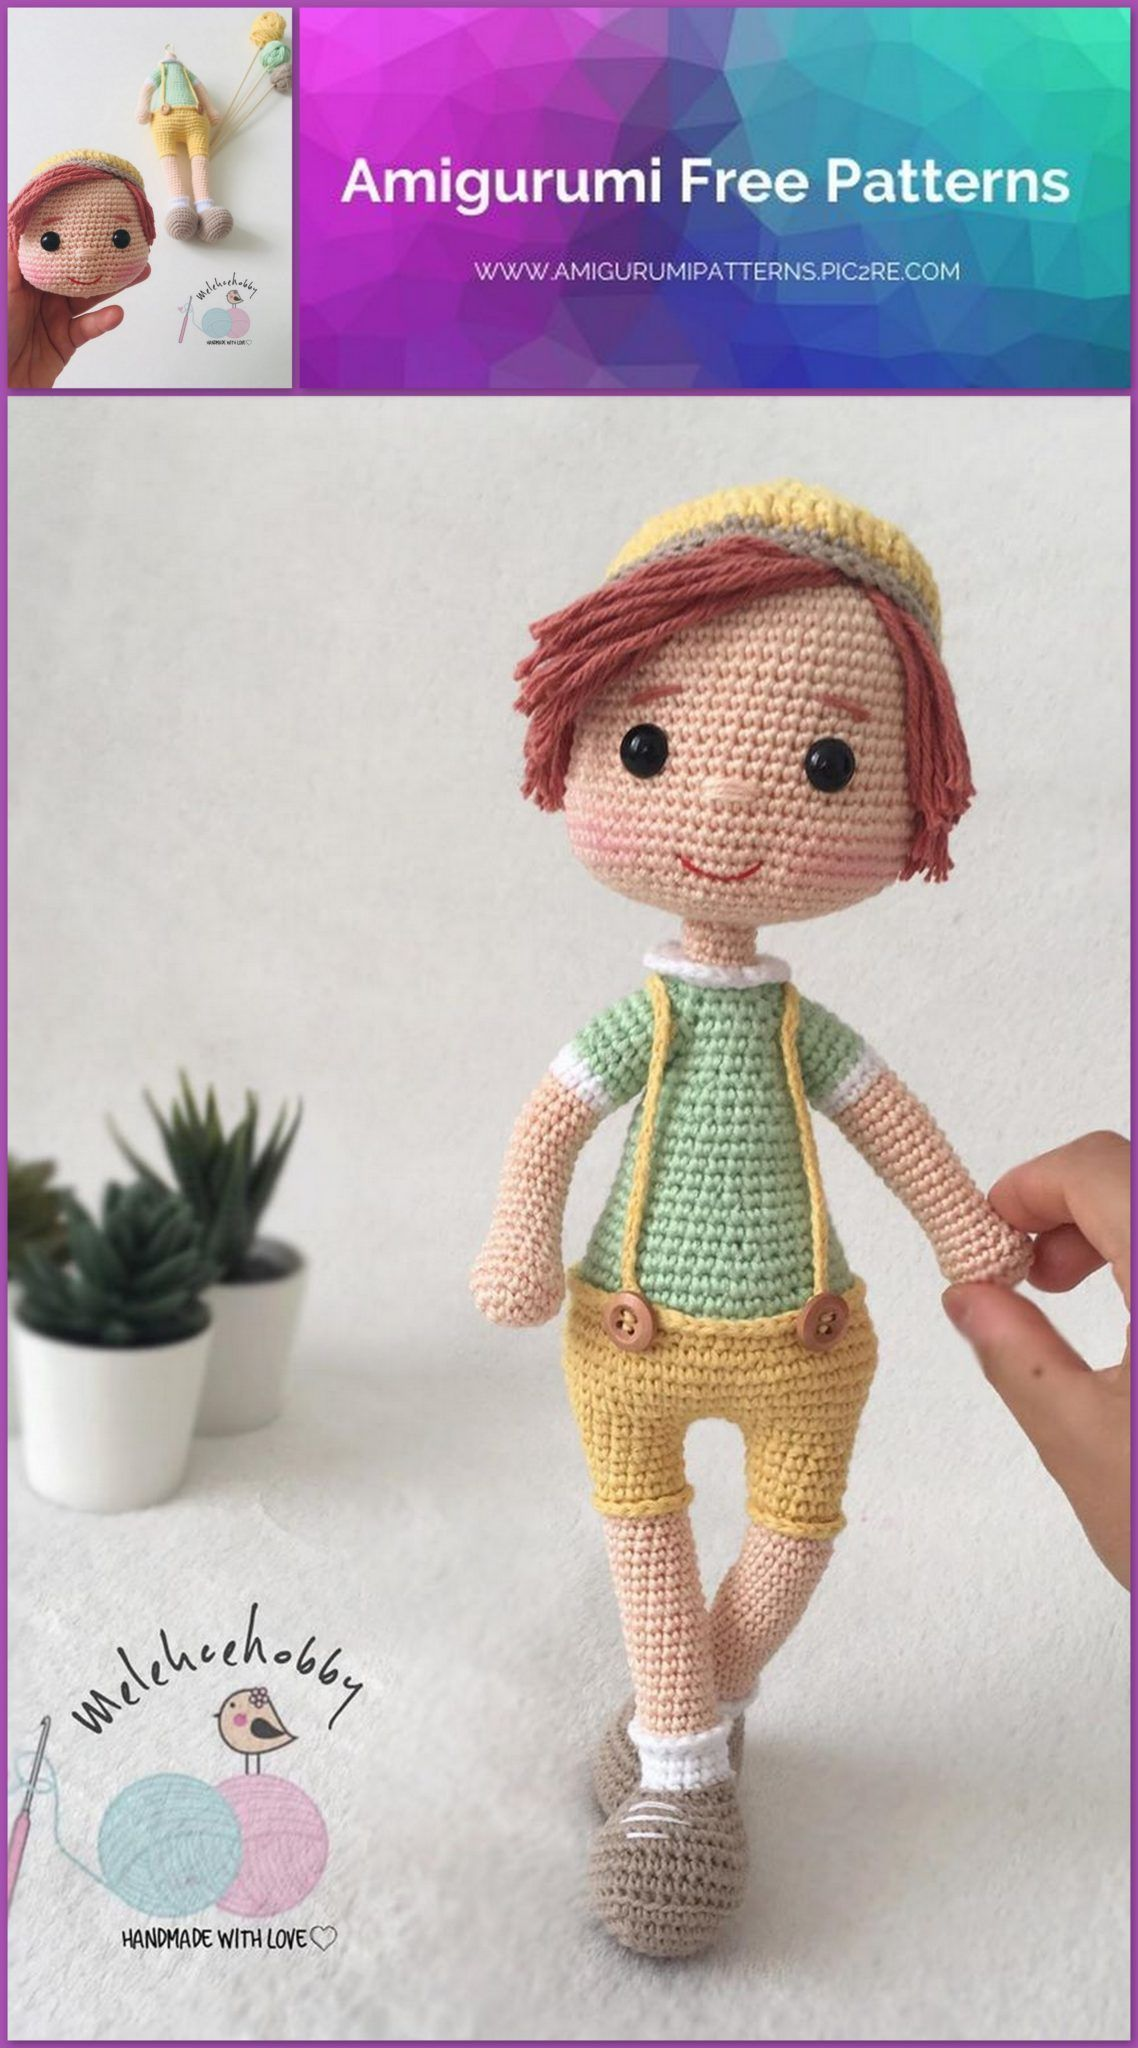 Free Crochet Amigurumi Doll Pattern Tutorials | Crochet dolls free ... | 2048x1138